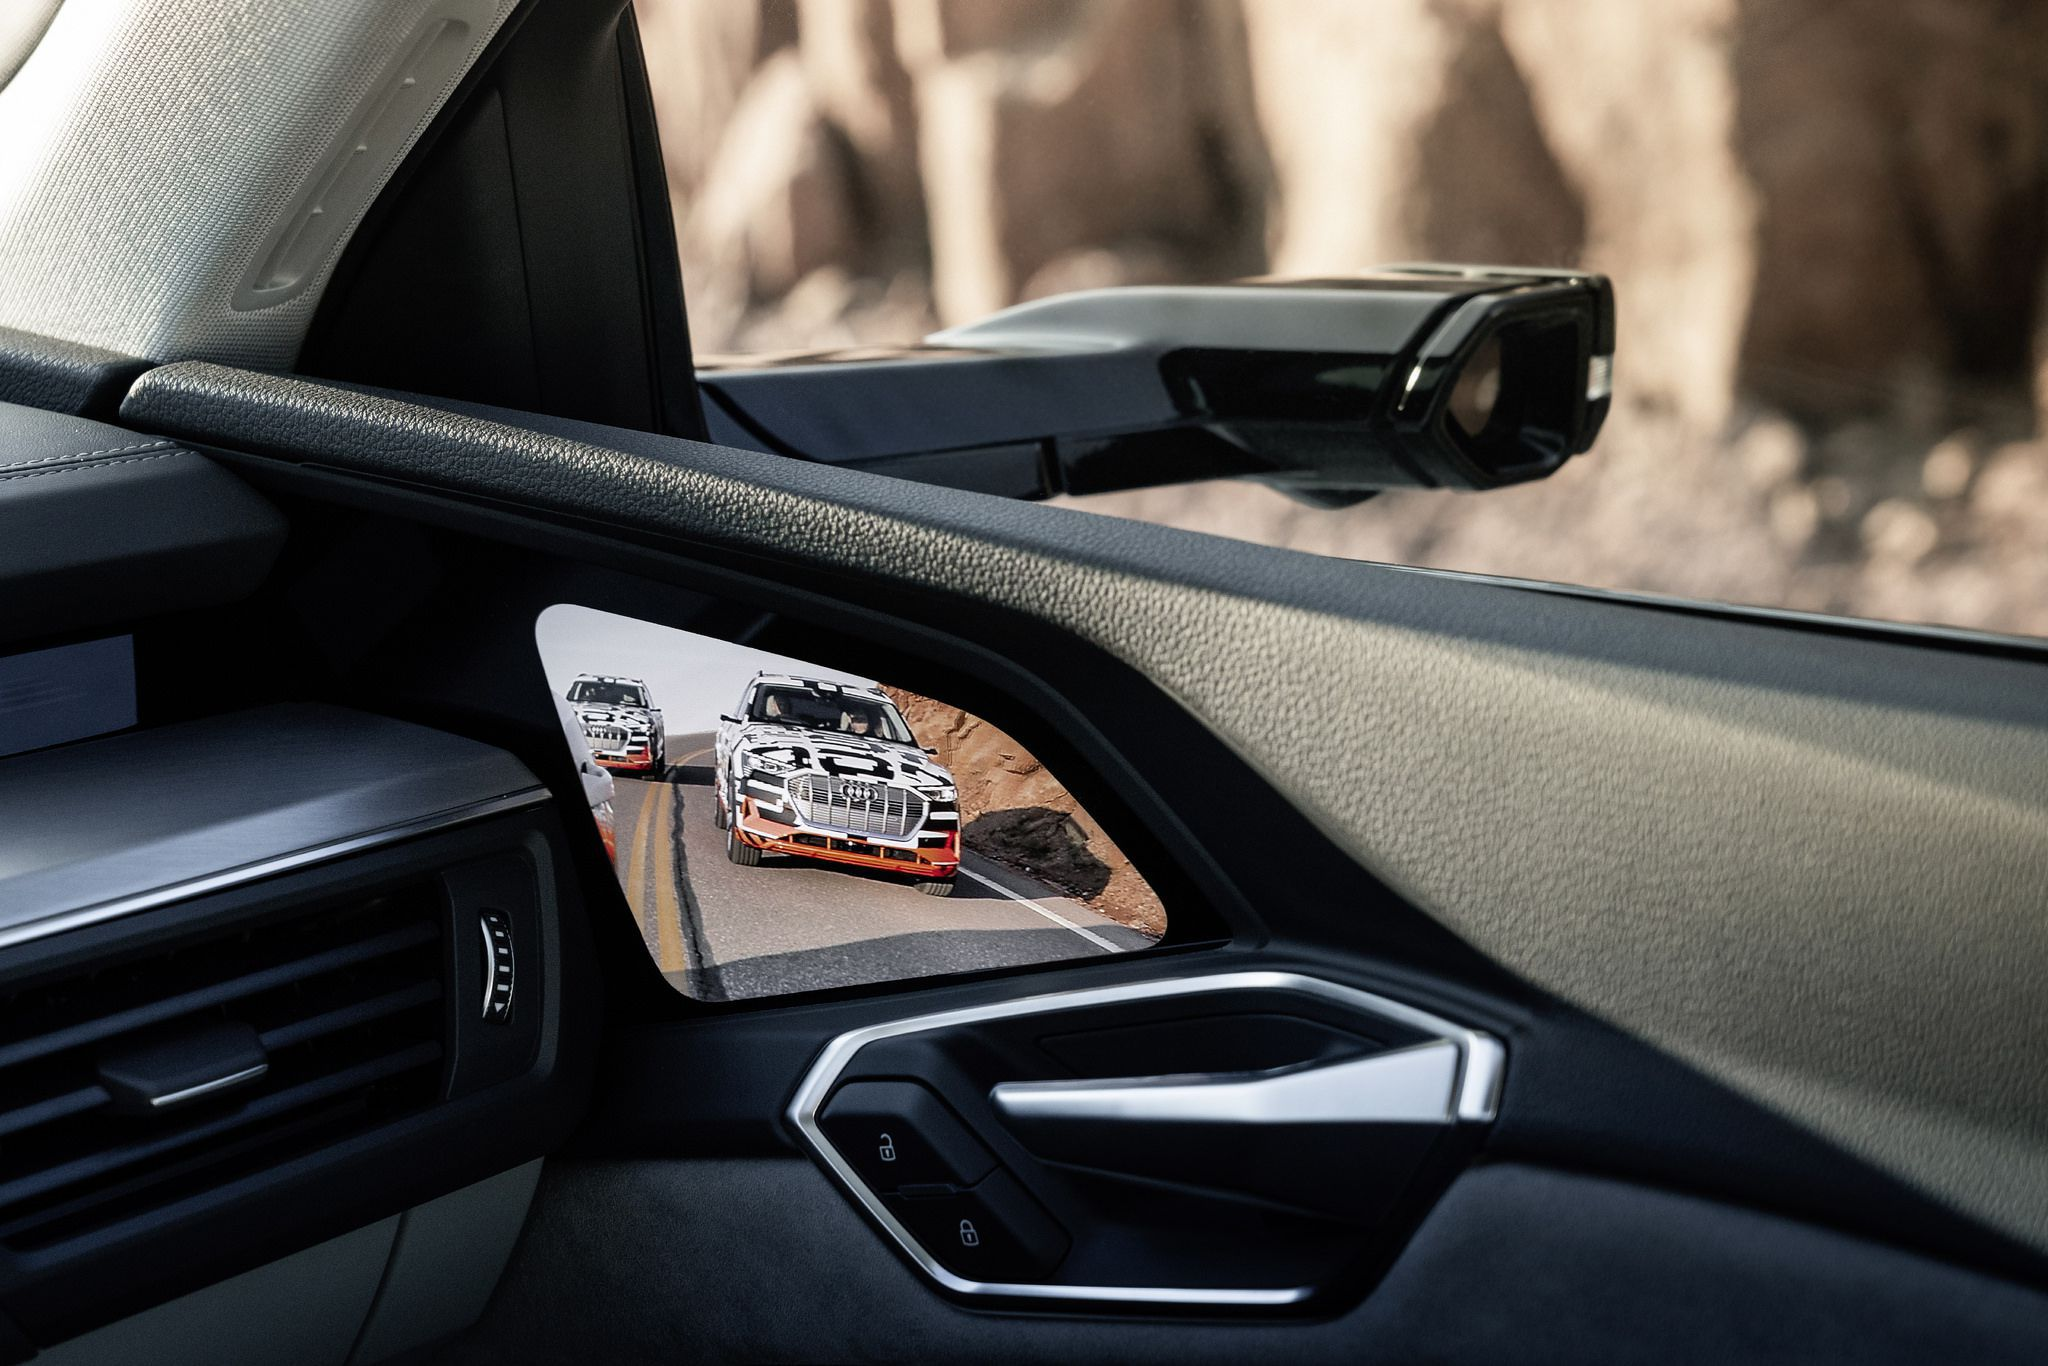 Extreme Rekuperation Interior - 2020 Audi e-tron right virtual mirror